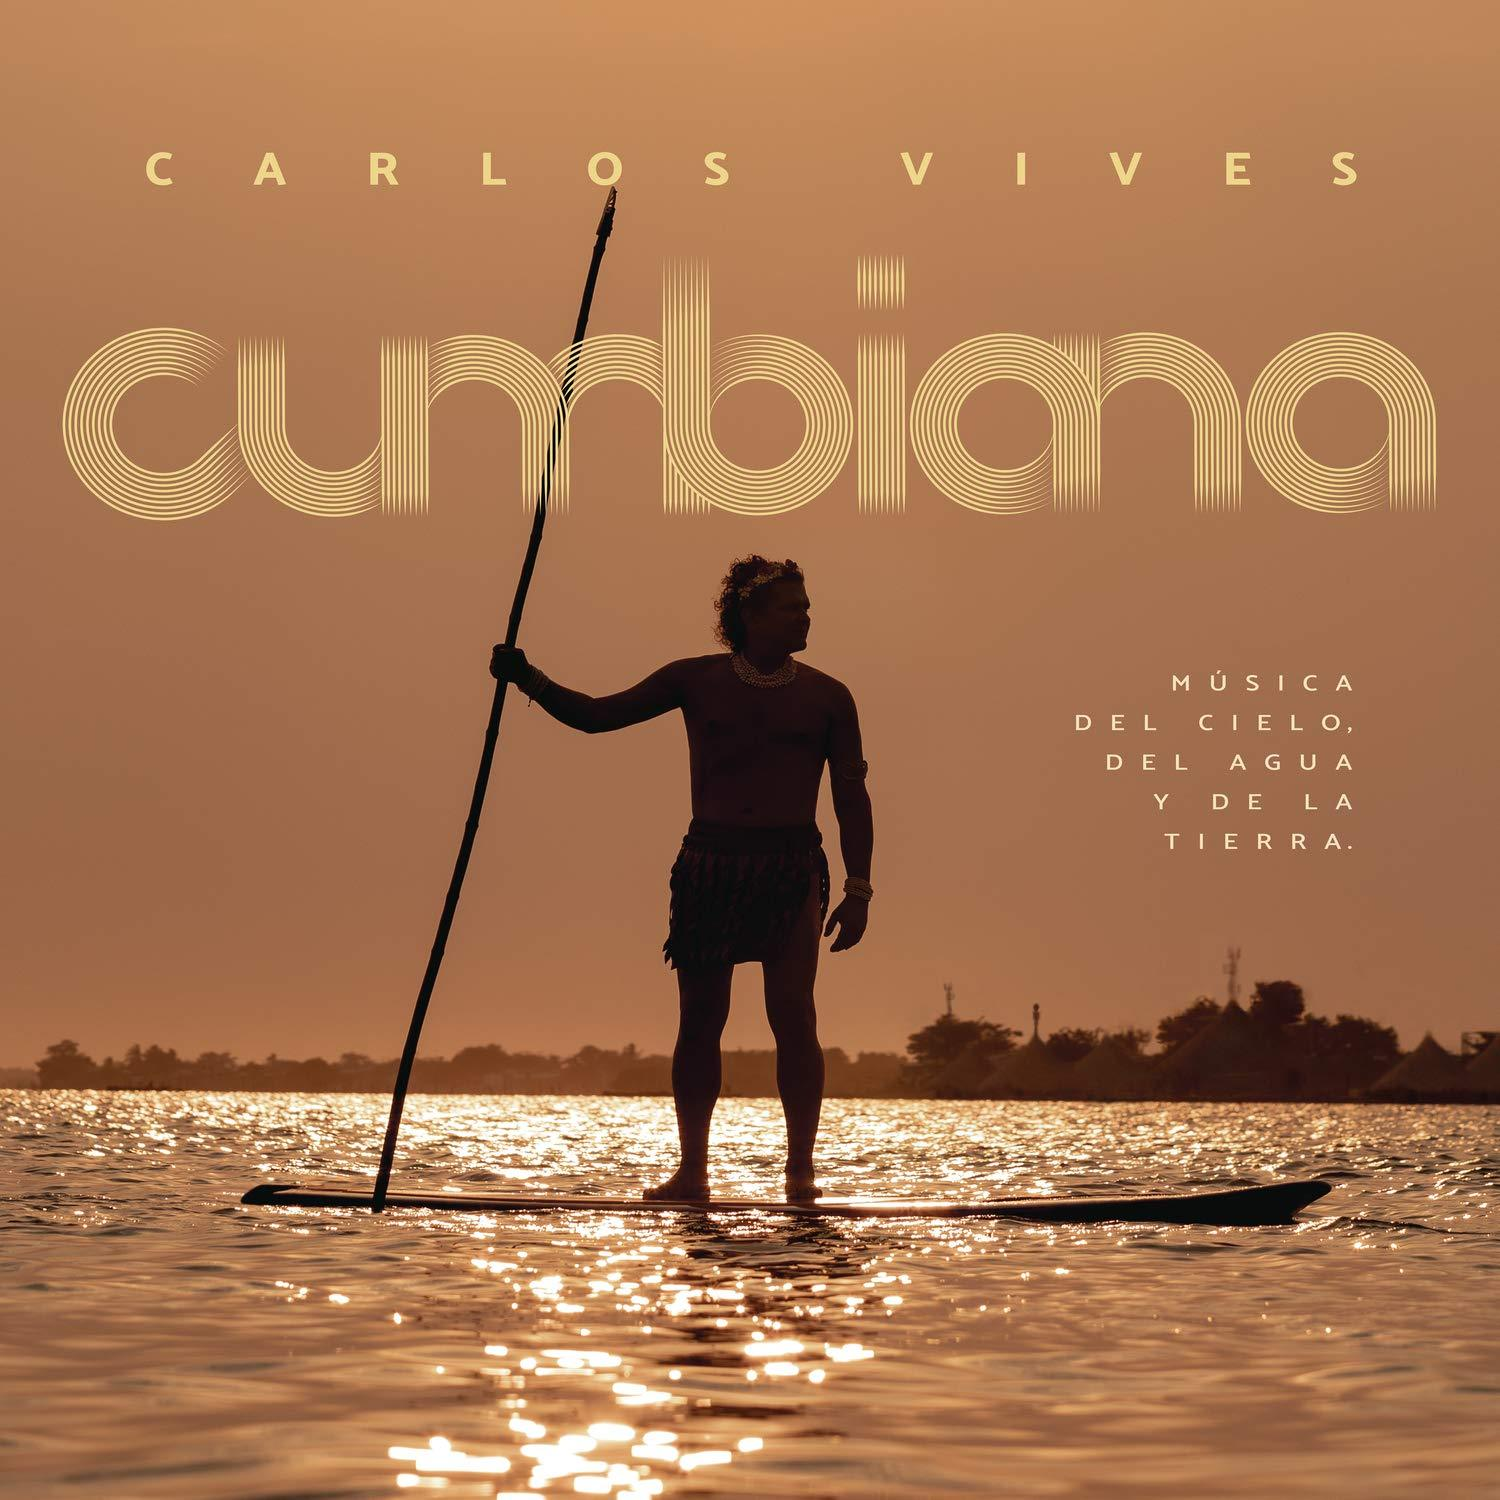 Carlos Vives - Cumbiana [LP] (150 Gram) - Urban Vinyl | Records, Headphones, and more.